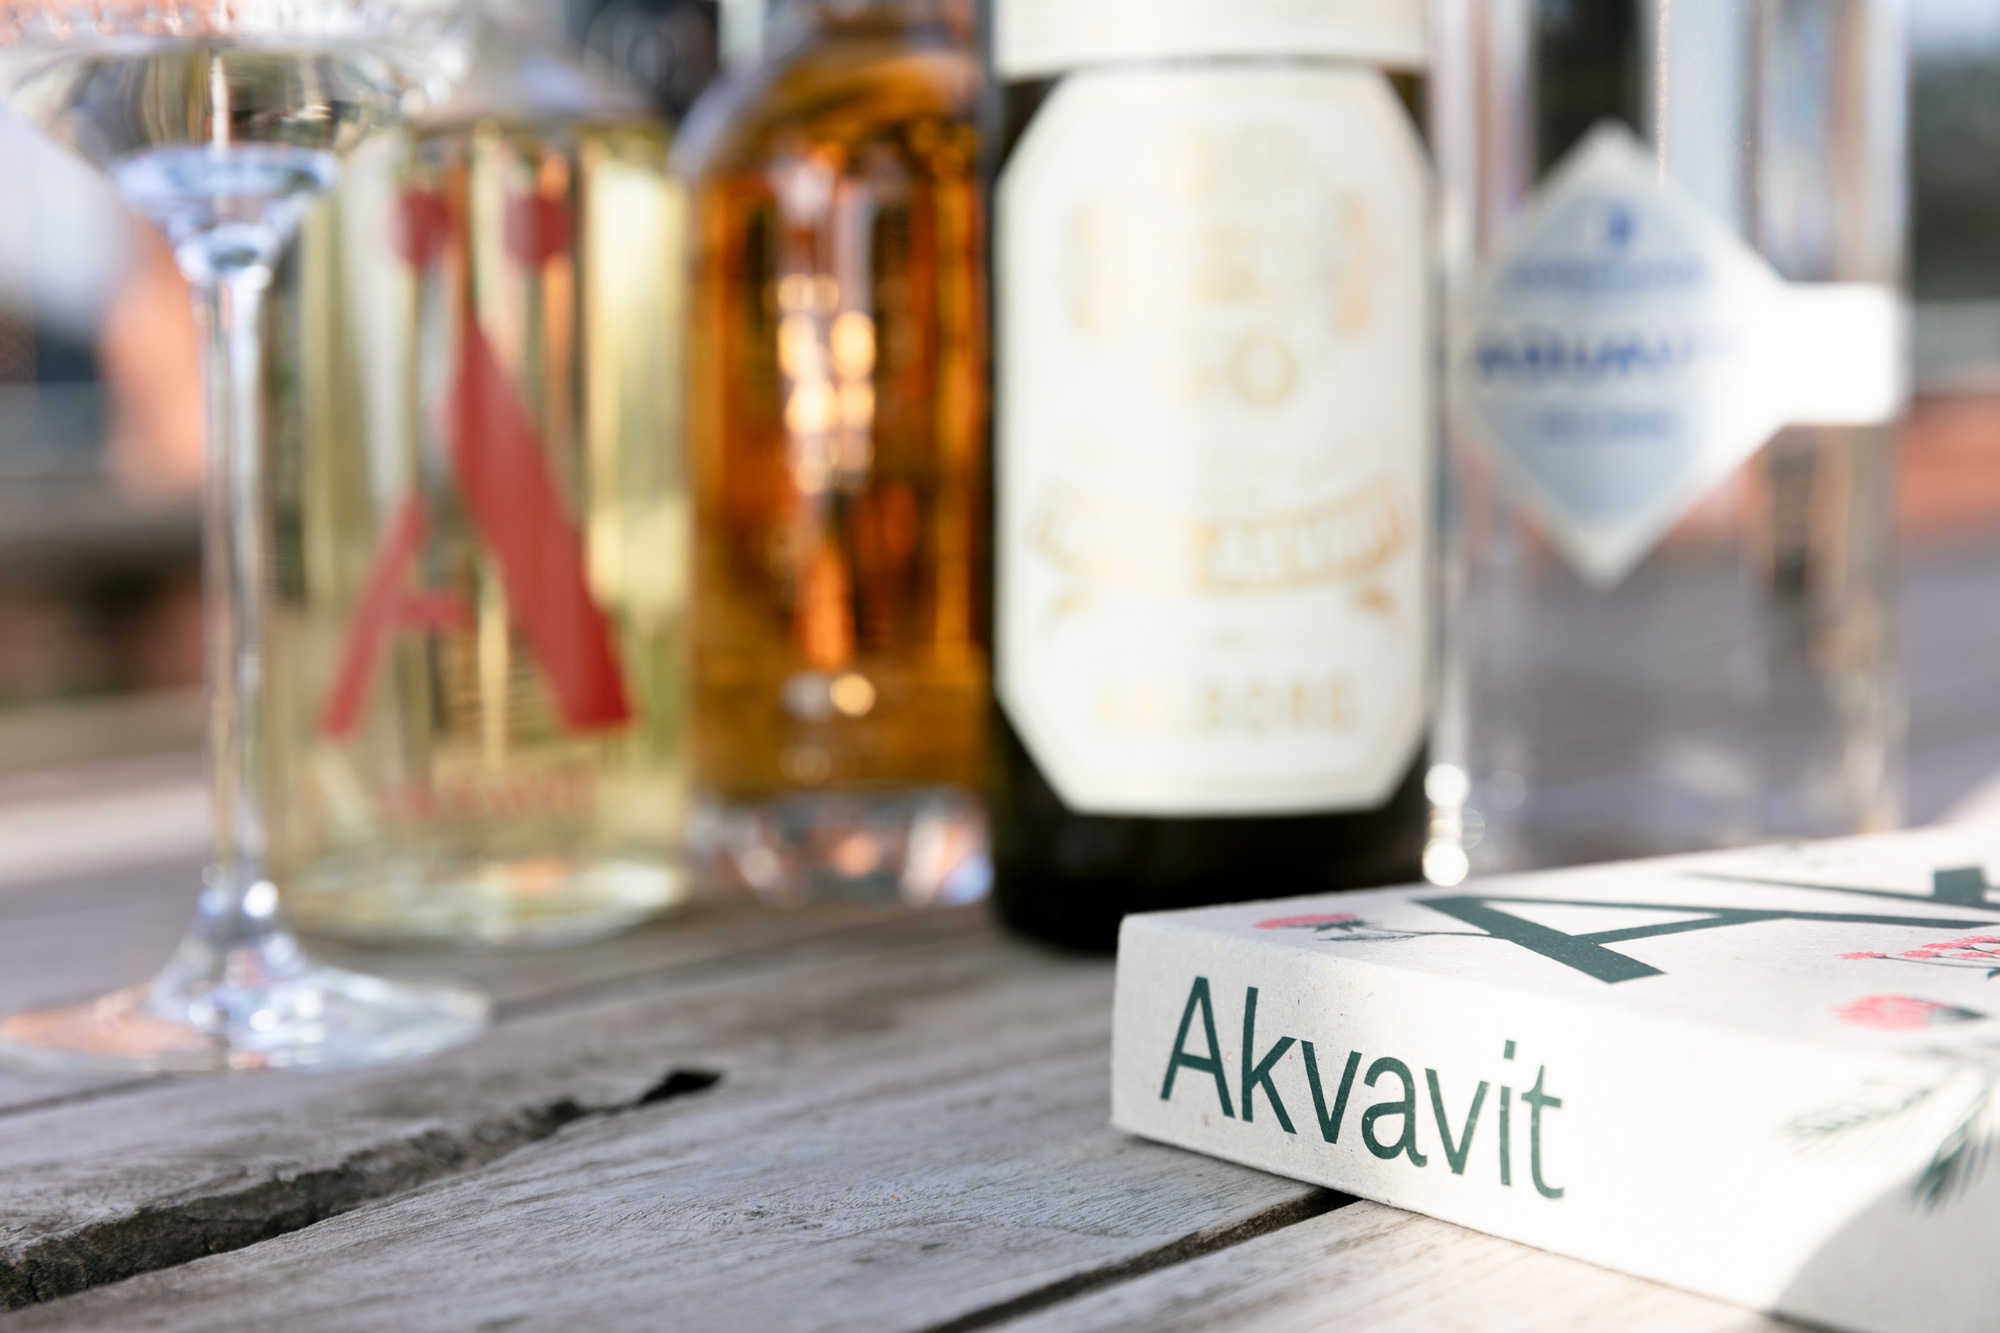 Is it Akvavit, Akevitt or Aquavit?